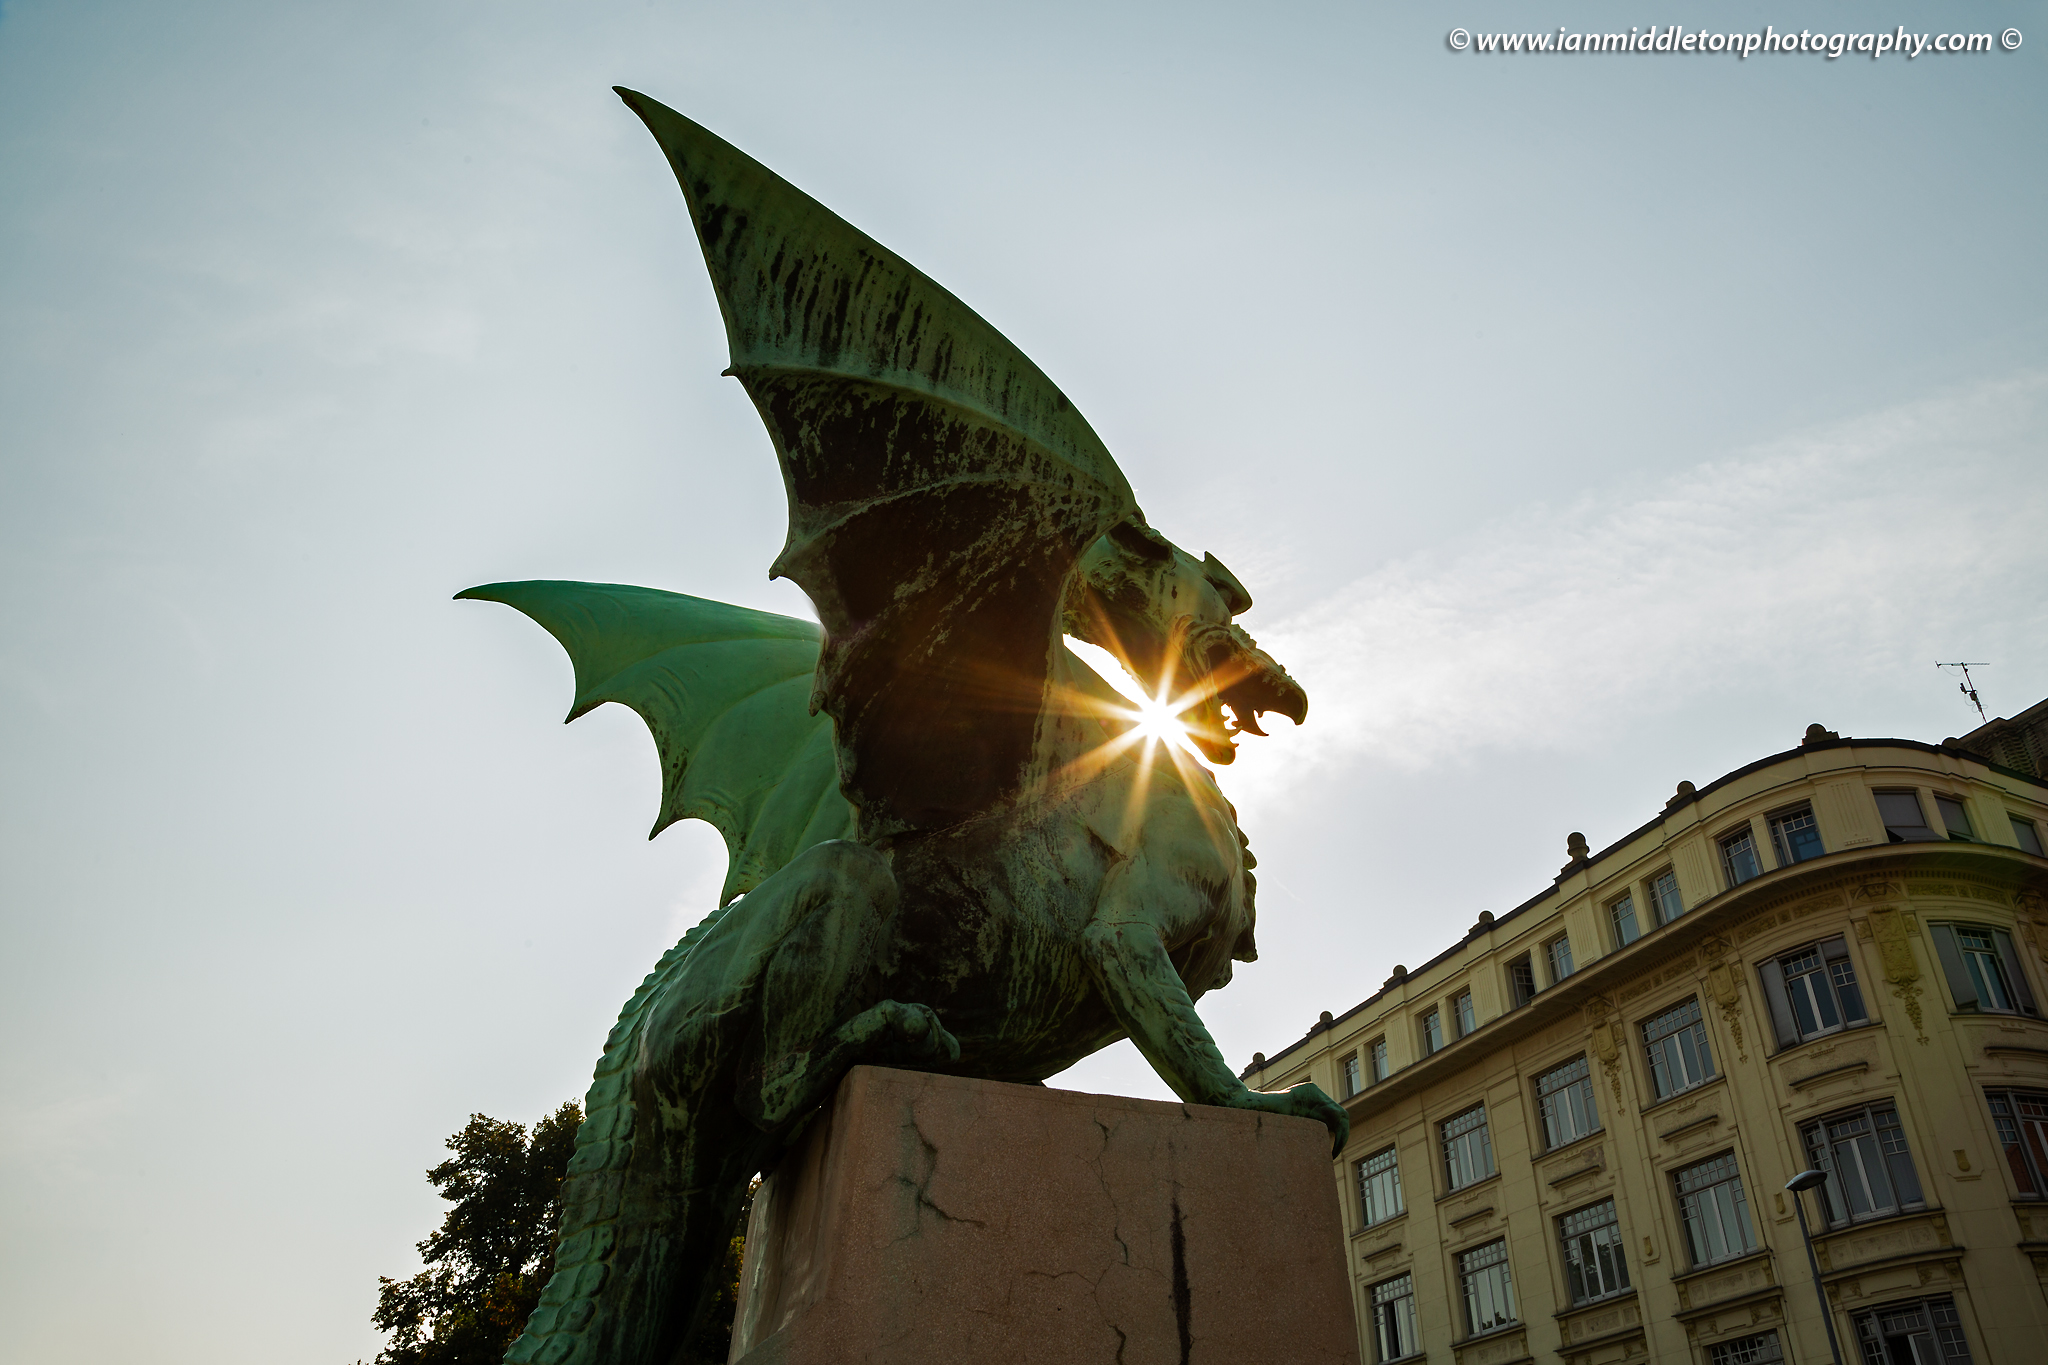 Sunburst through a dragon on the Dragon Bridge in Ljubljana, Slovenia.